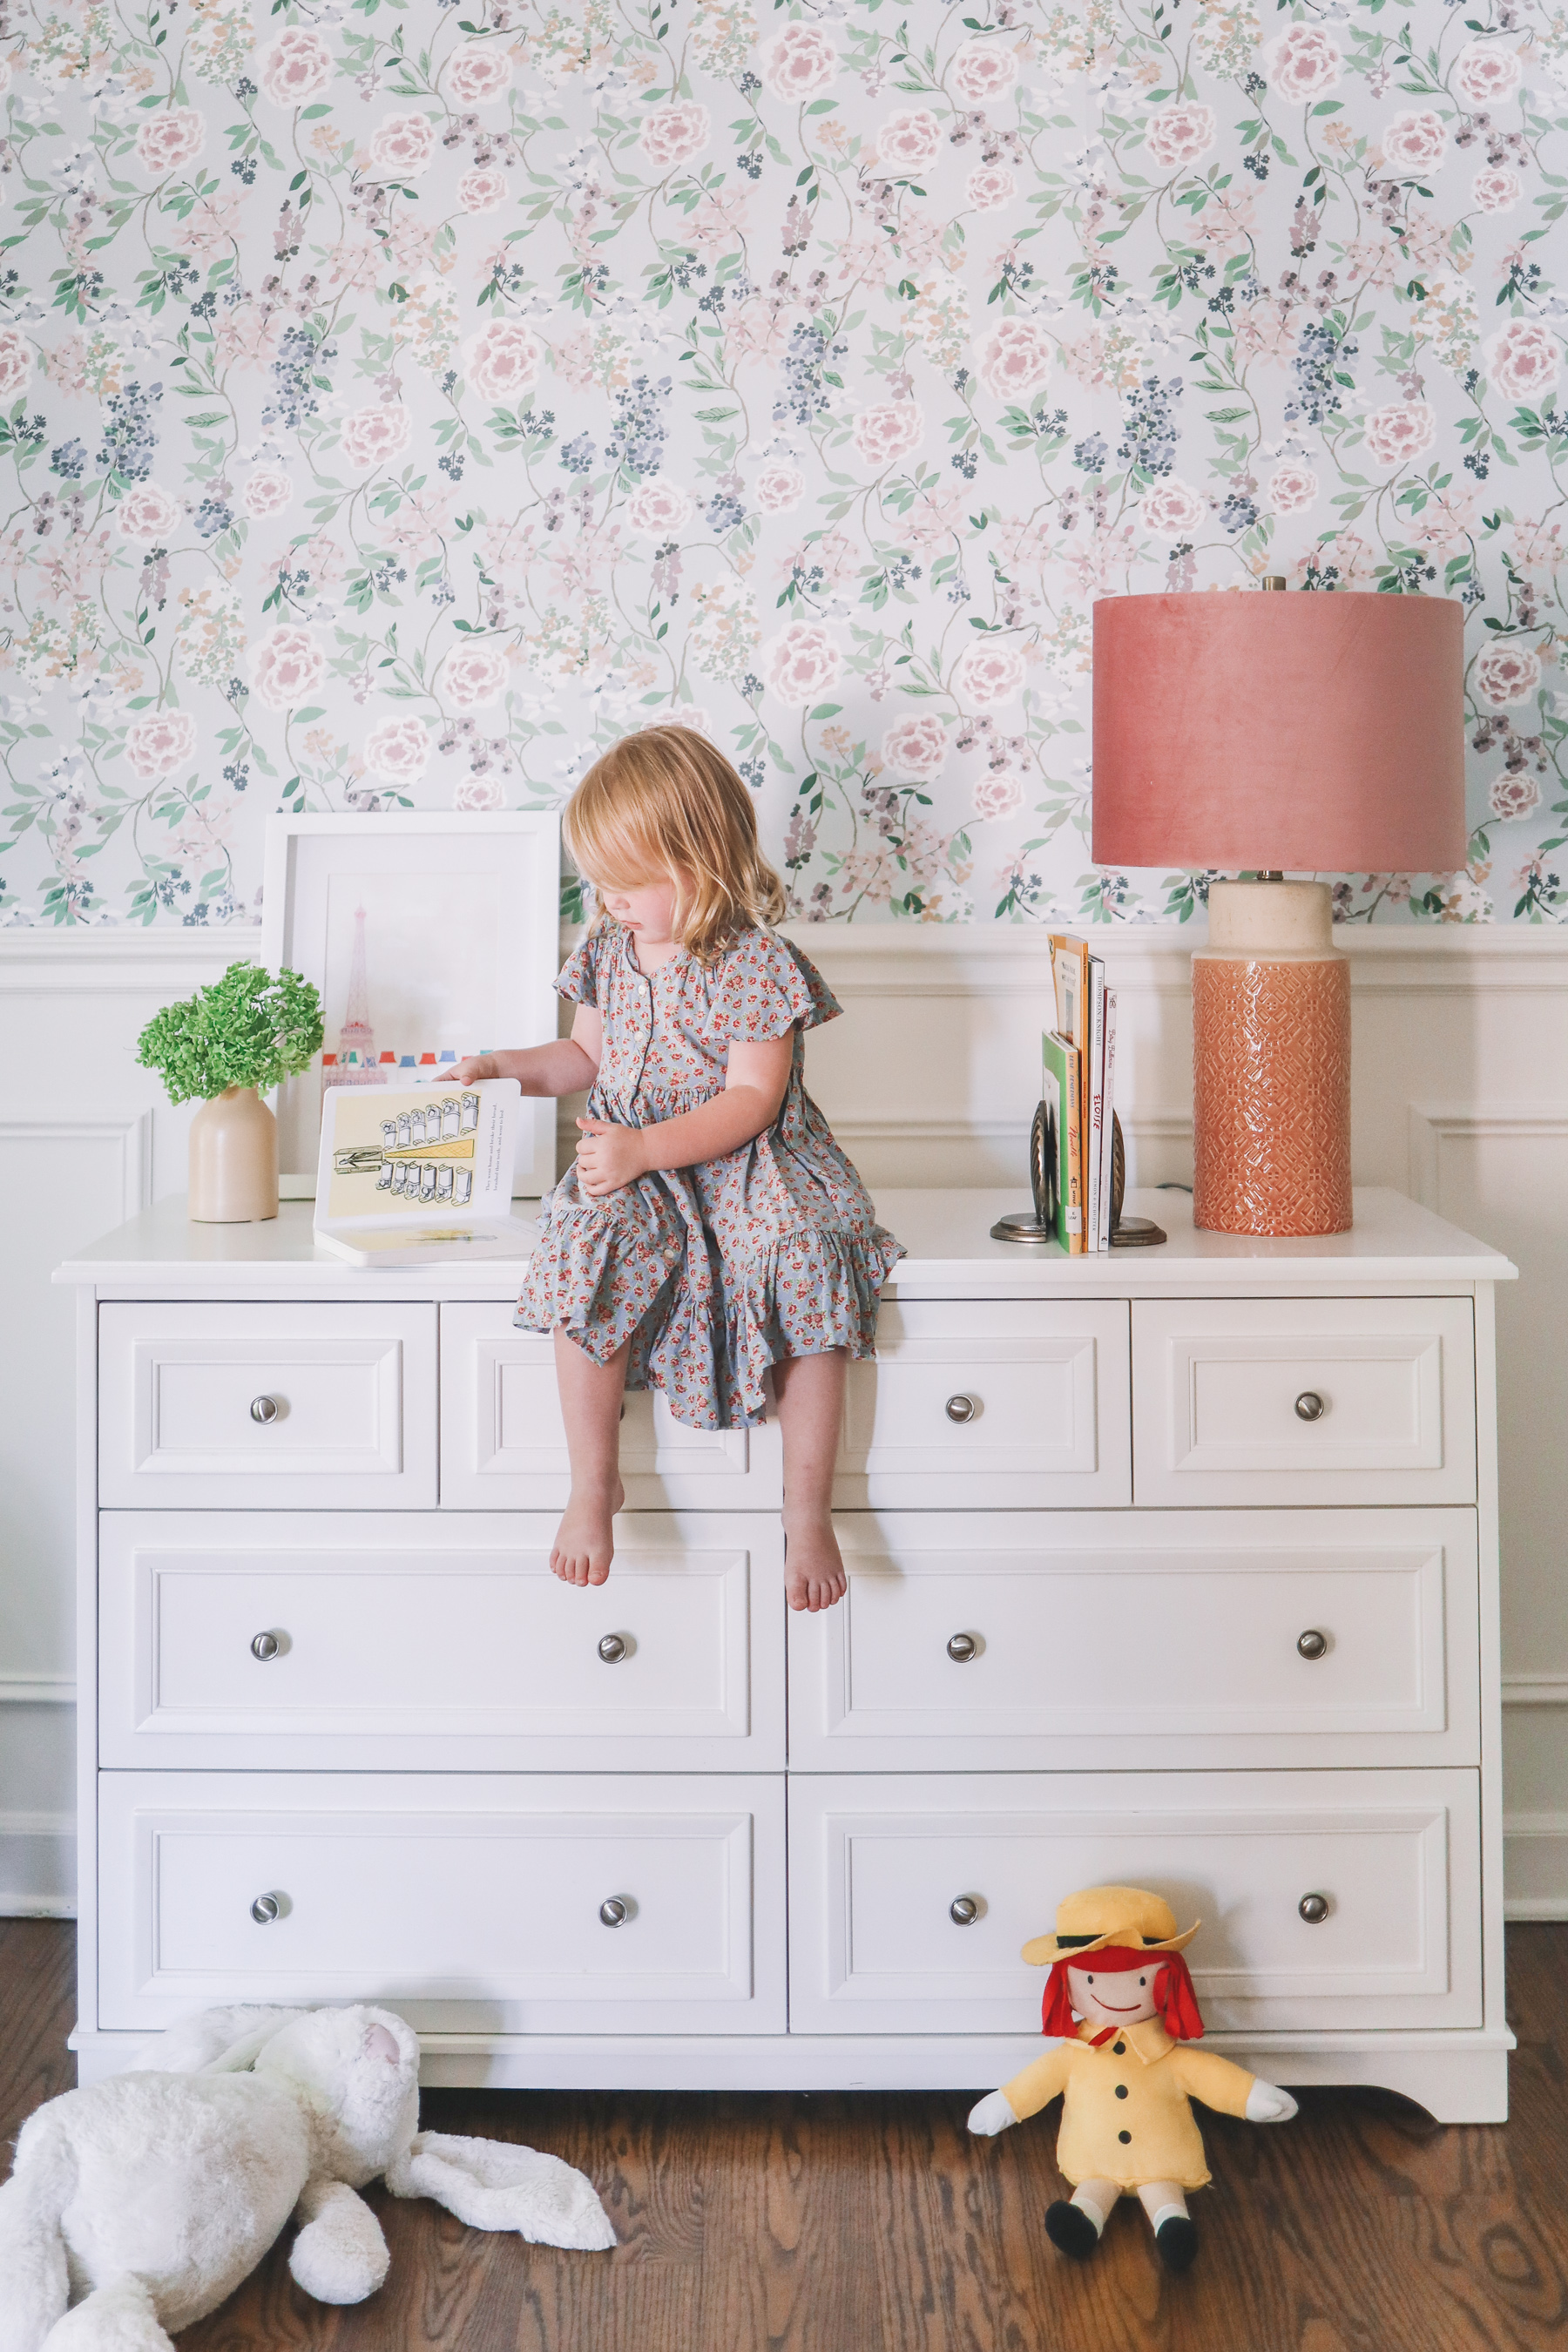 flower home of this little girl who is sitting on a dresser